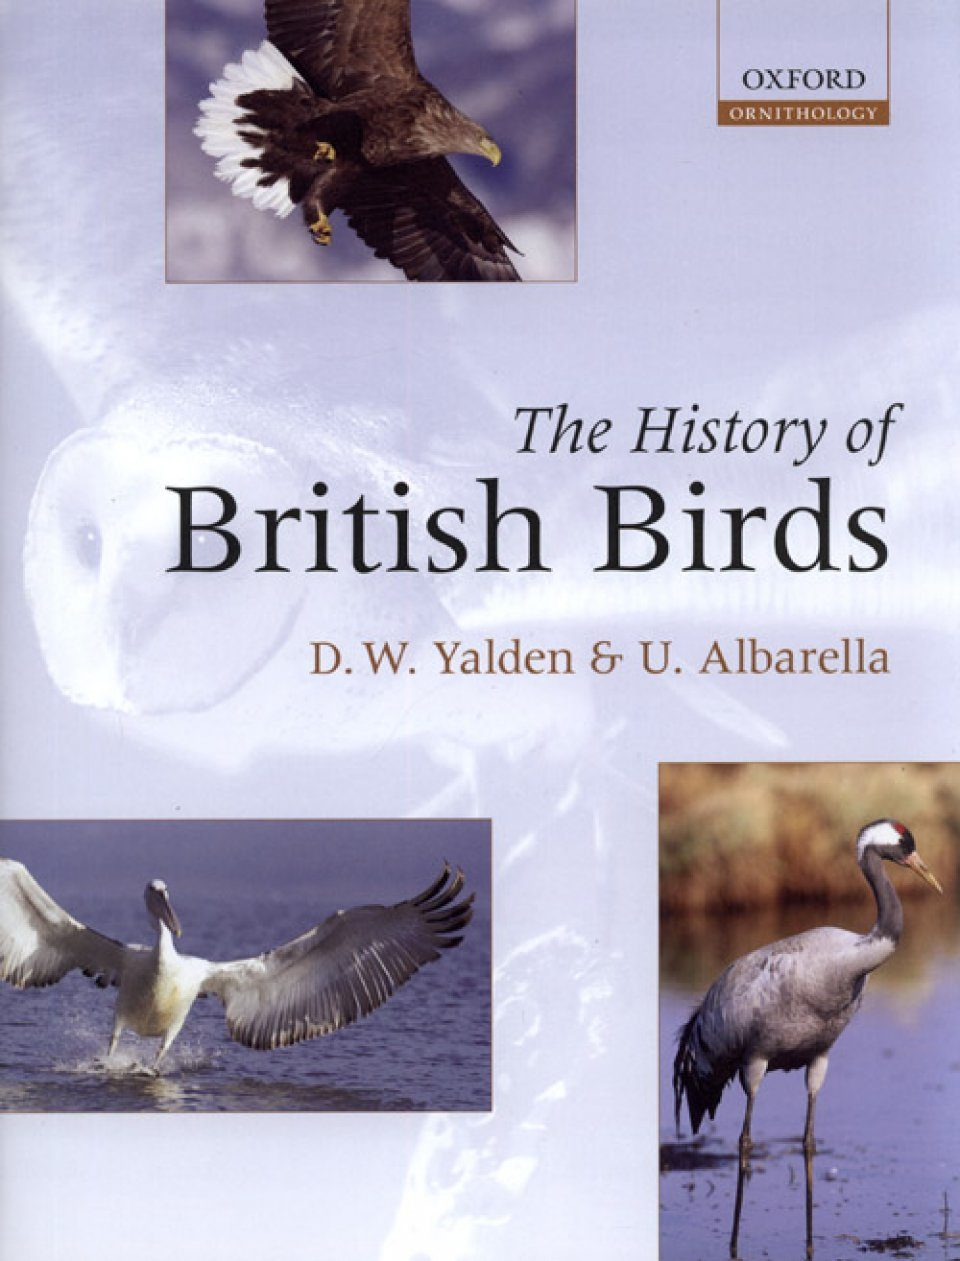 The History of British Birds